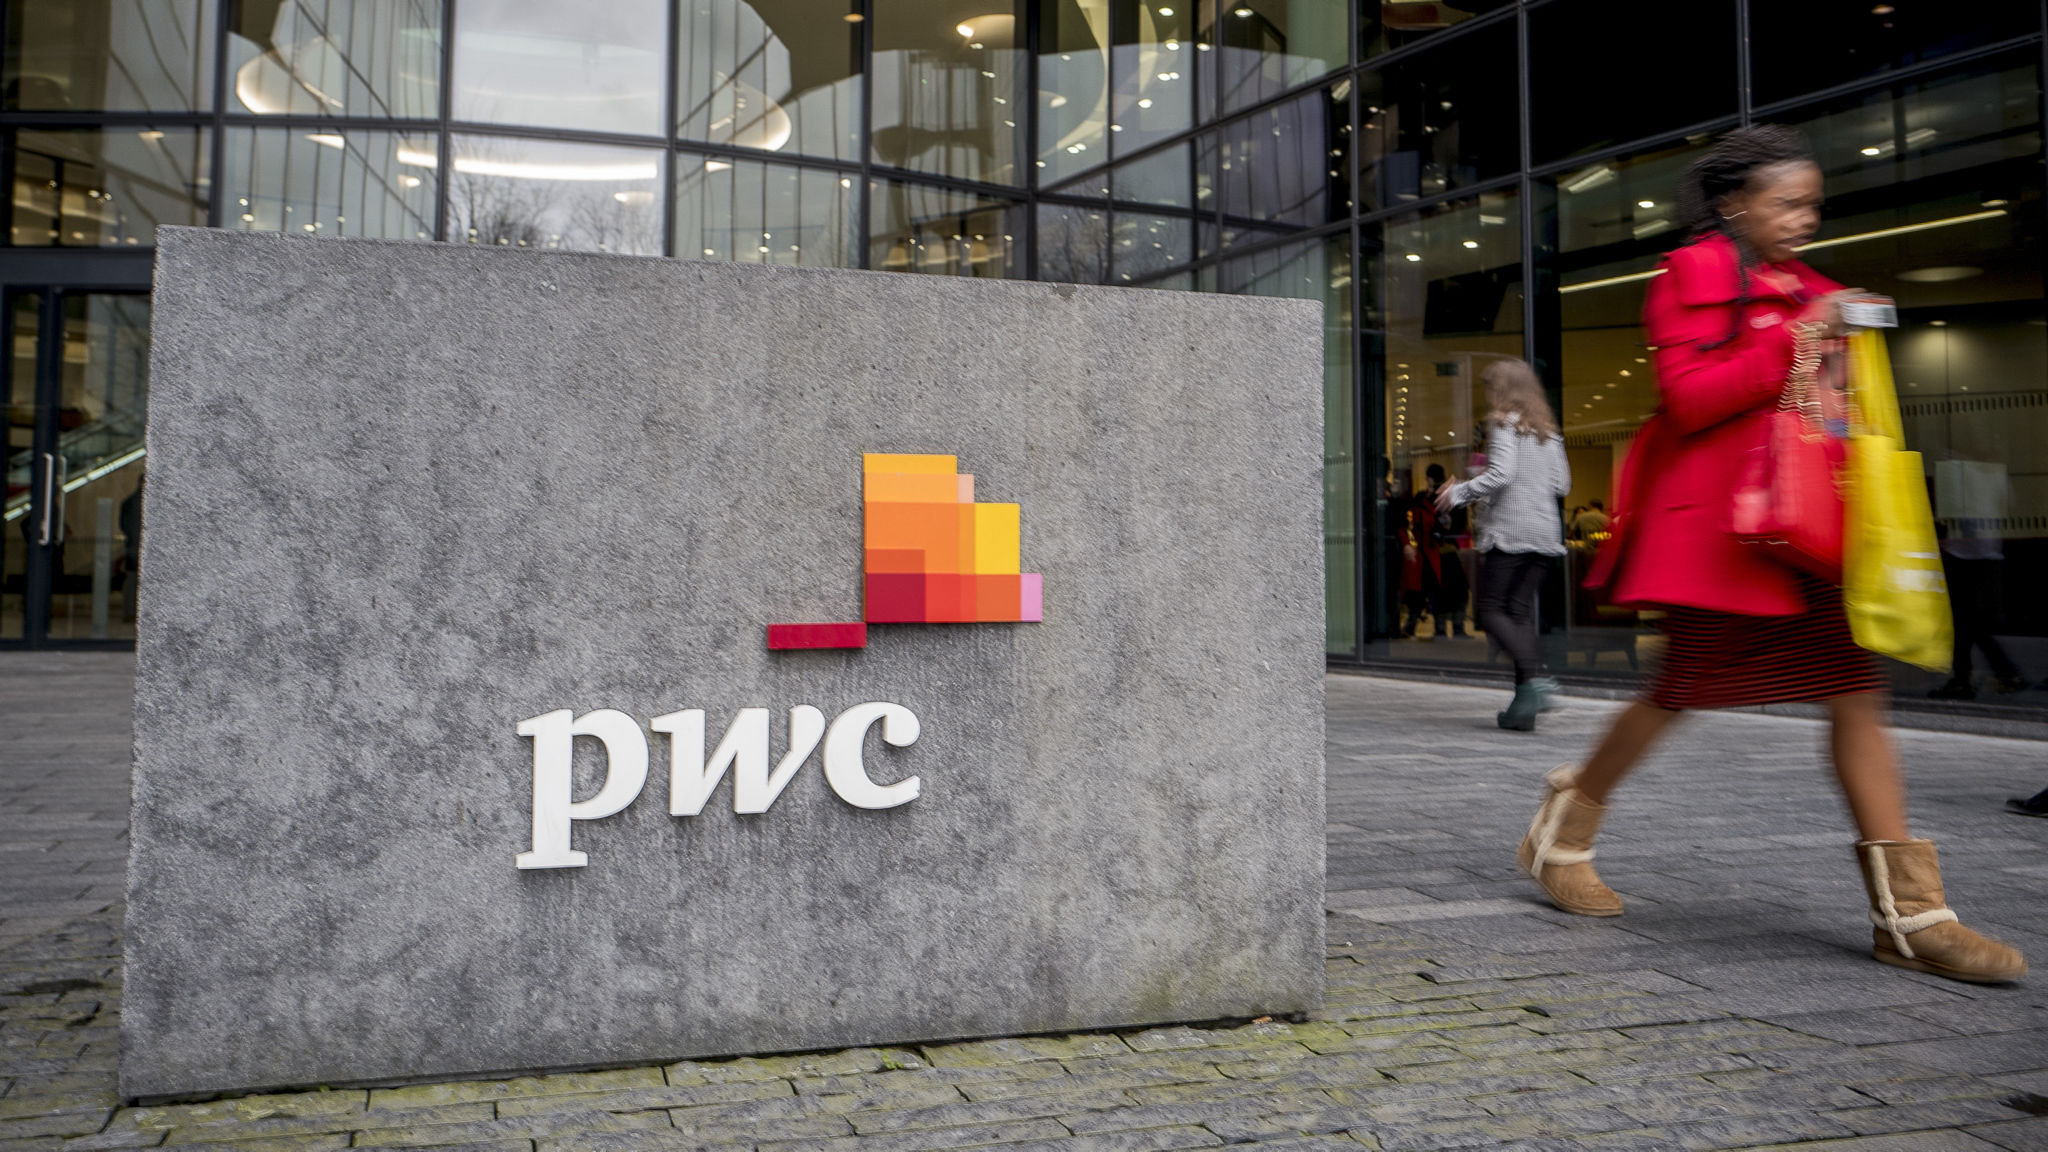 PwC receives second fine in a year for audit work by same